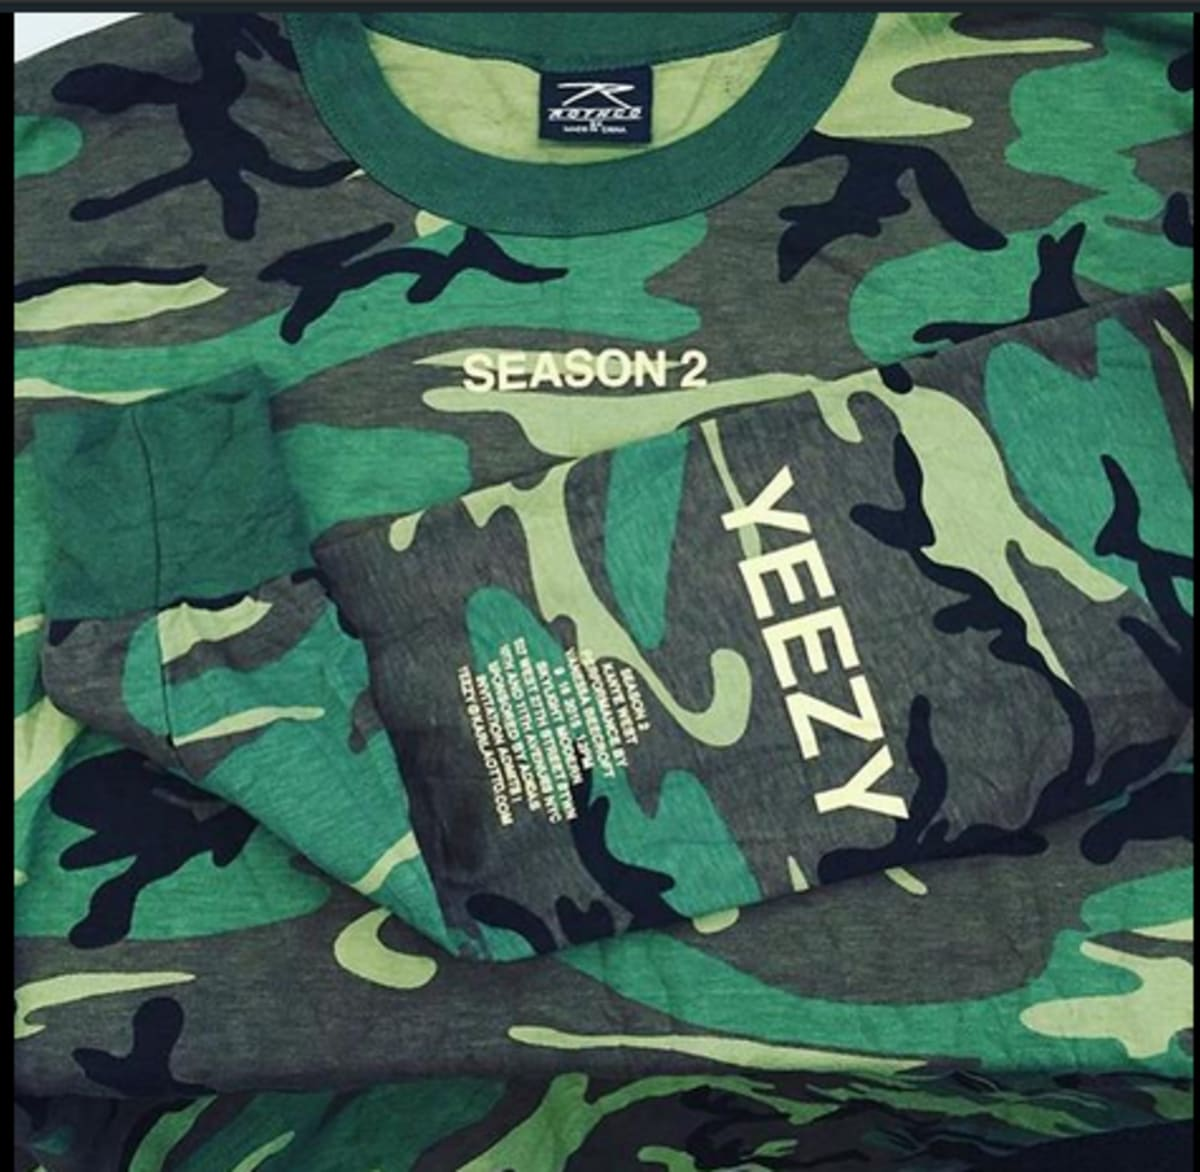 Kanye wests yeezy season 2 invites are printed on 13 camo long kanye wests yeezy season 2 invites are printed on 13 camo long sleeve t shirts complex stopboris Images